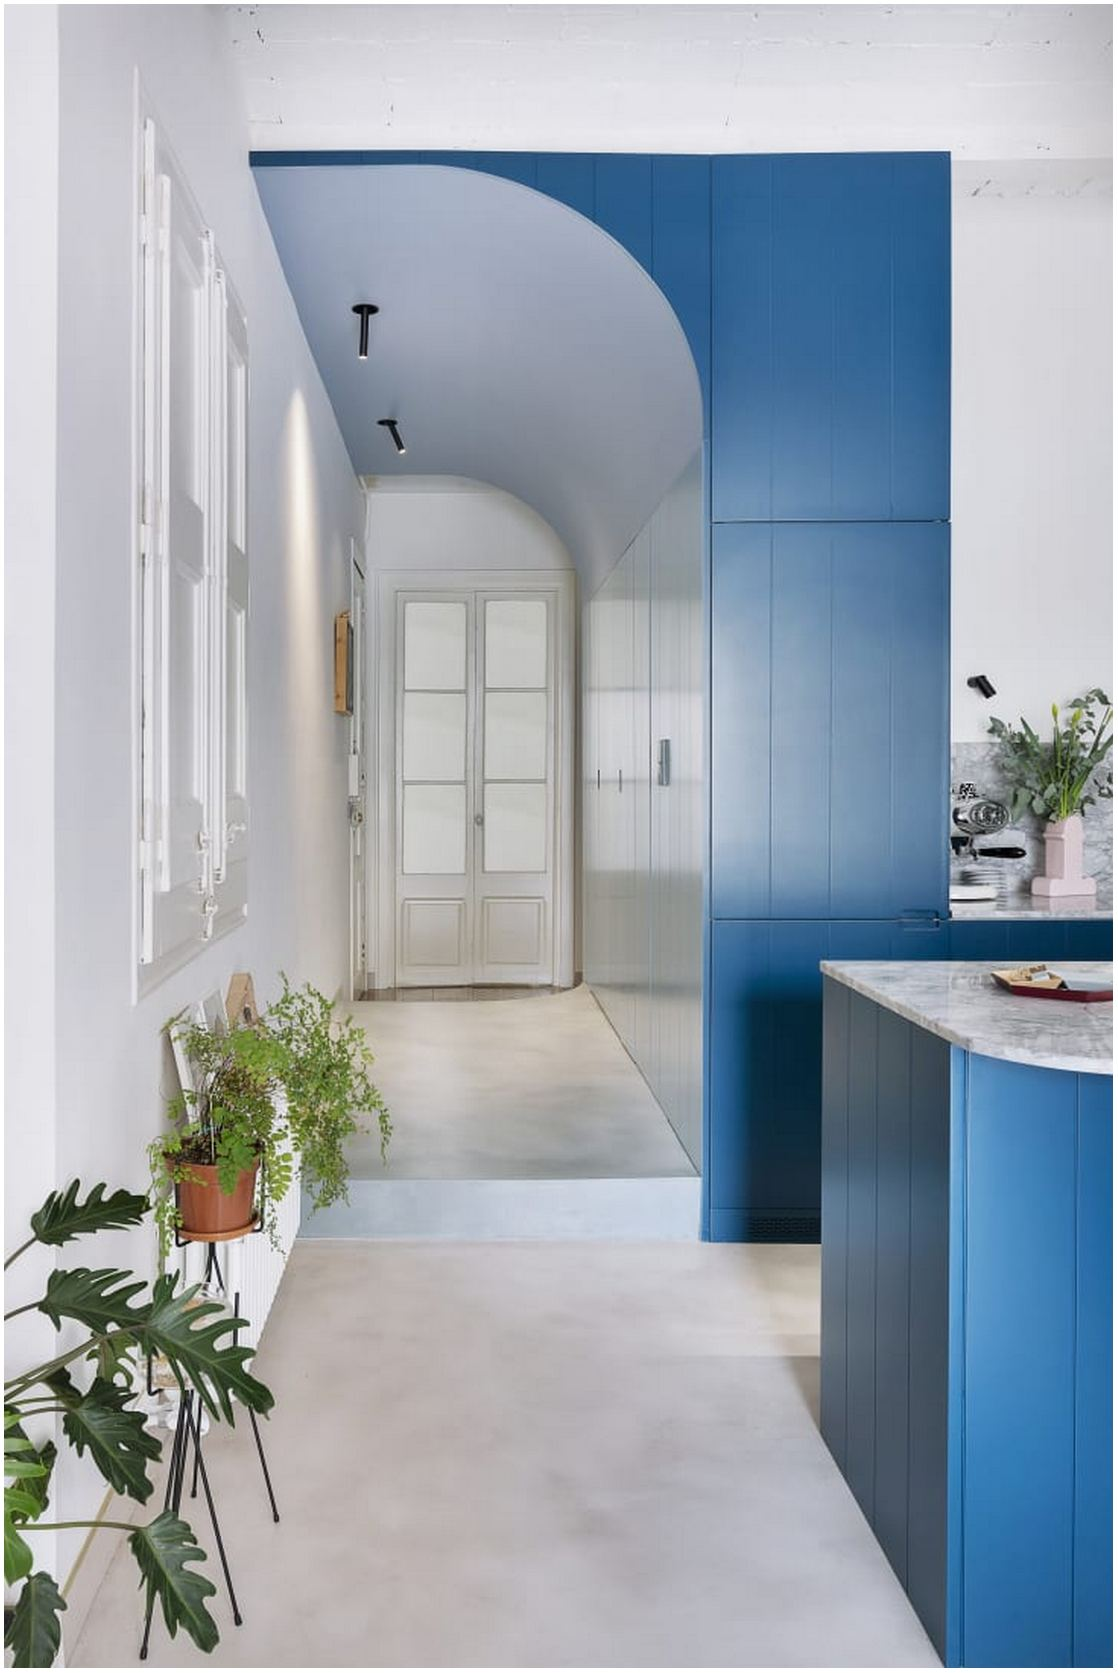 Sprucing Up Your Hallway - Prioritize pops of color